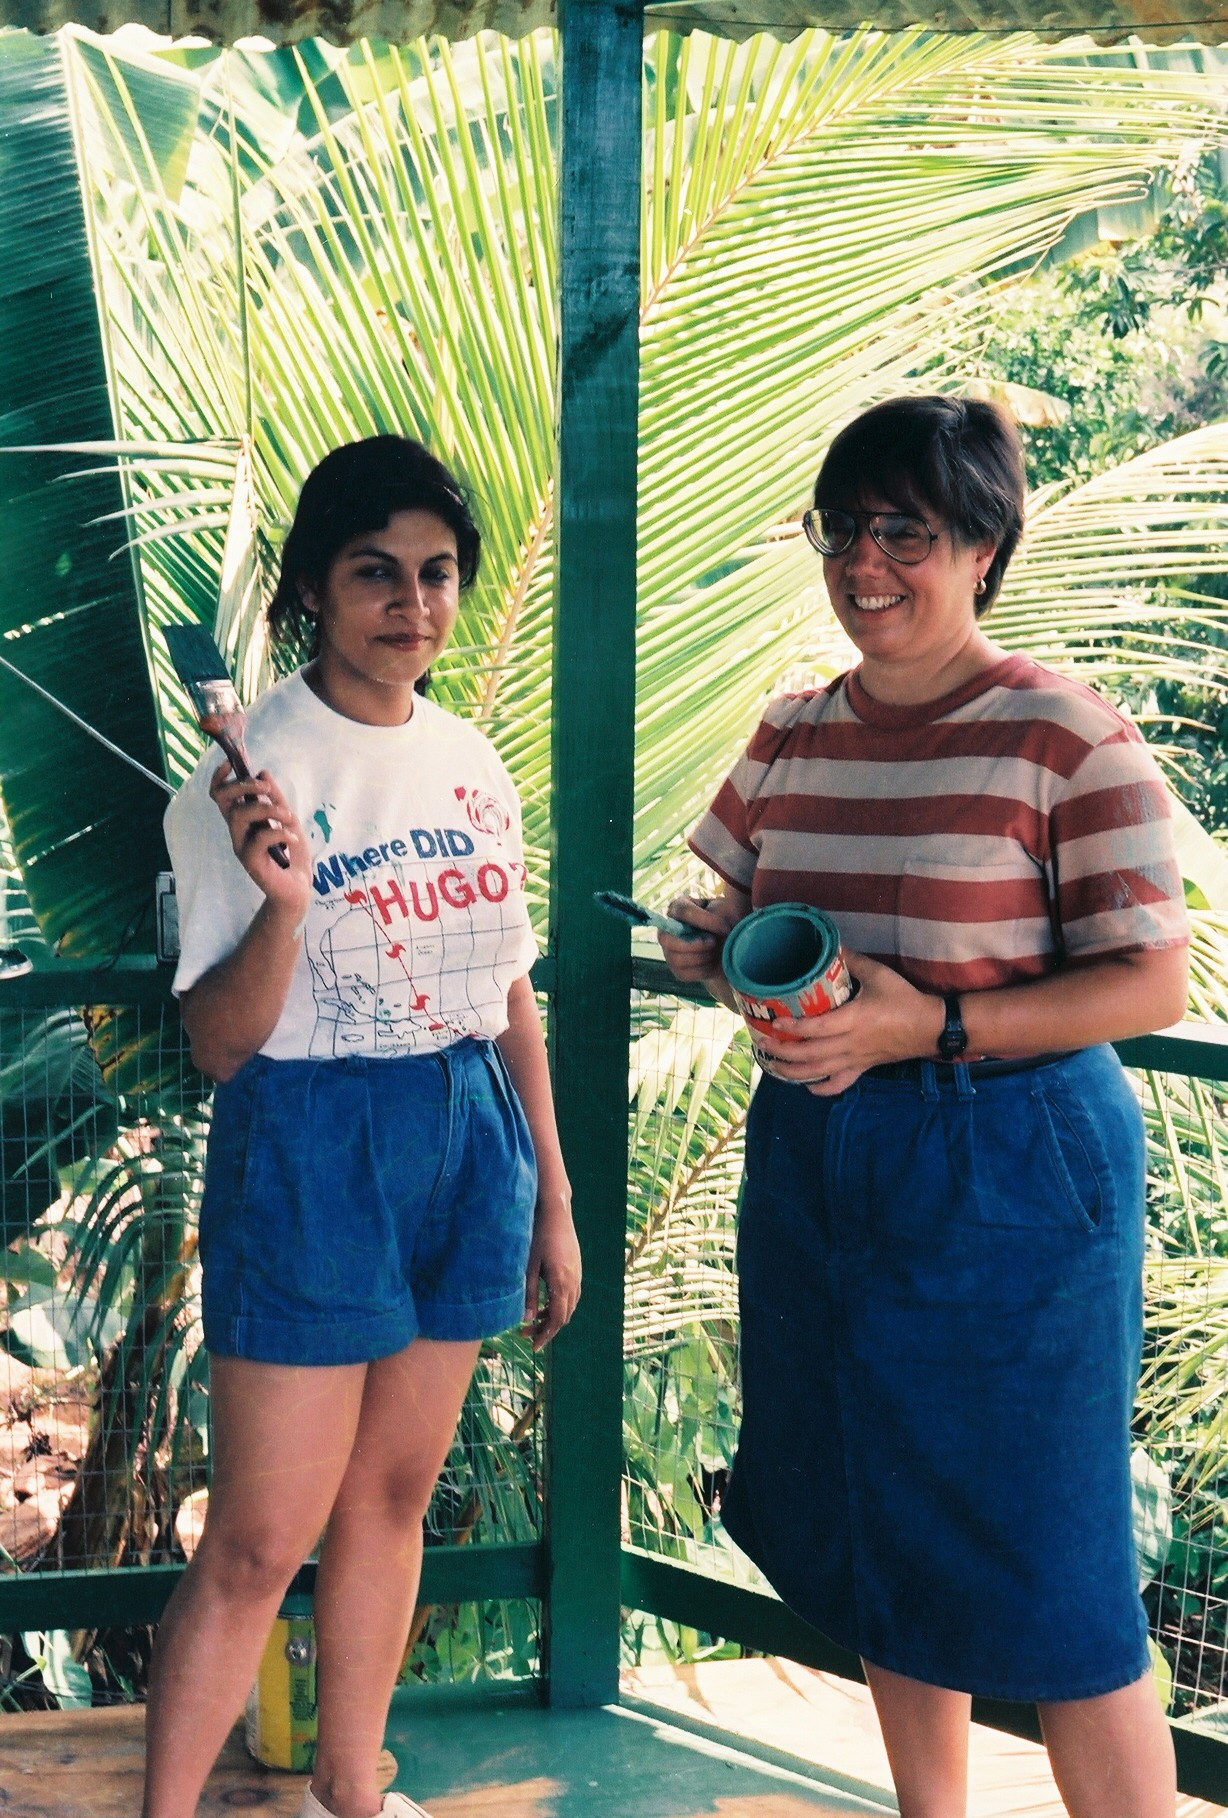 Young Liz Dayton with another girl, painting her apartment, probably after Hurricane Hugo.